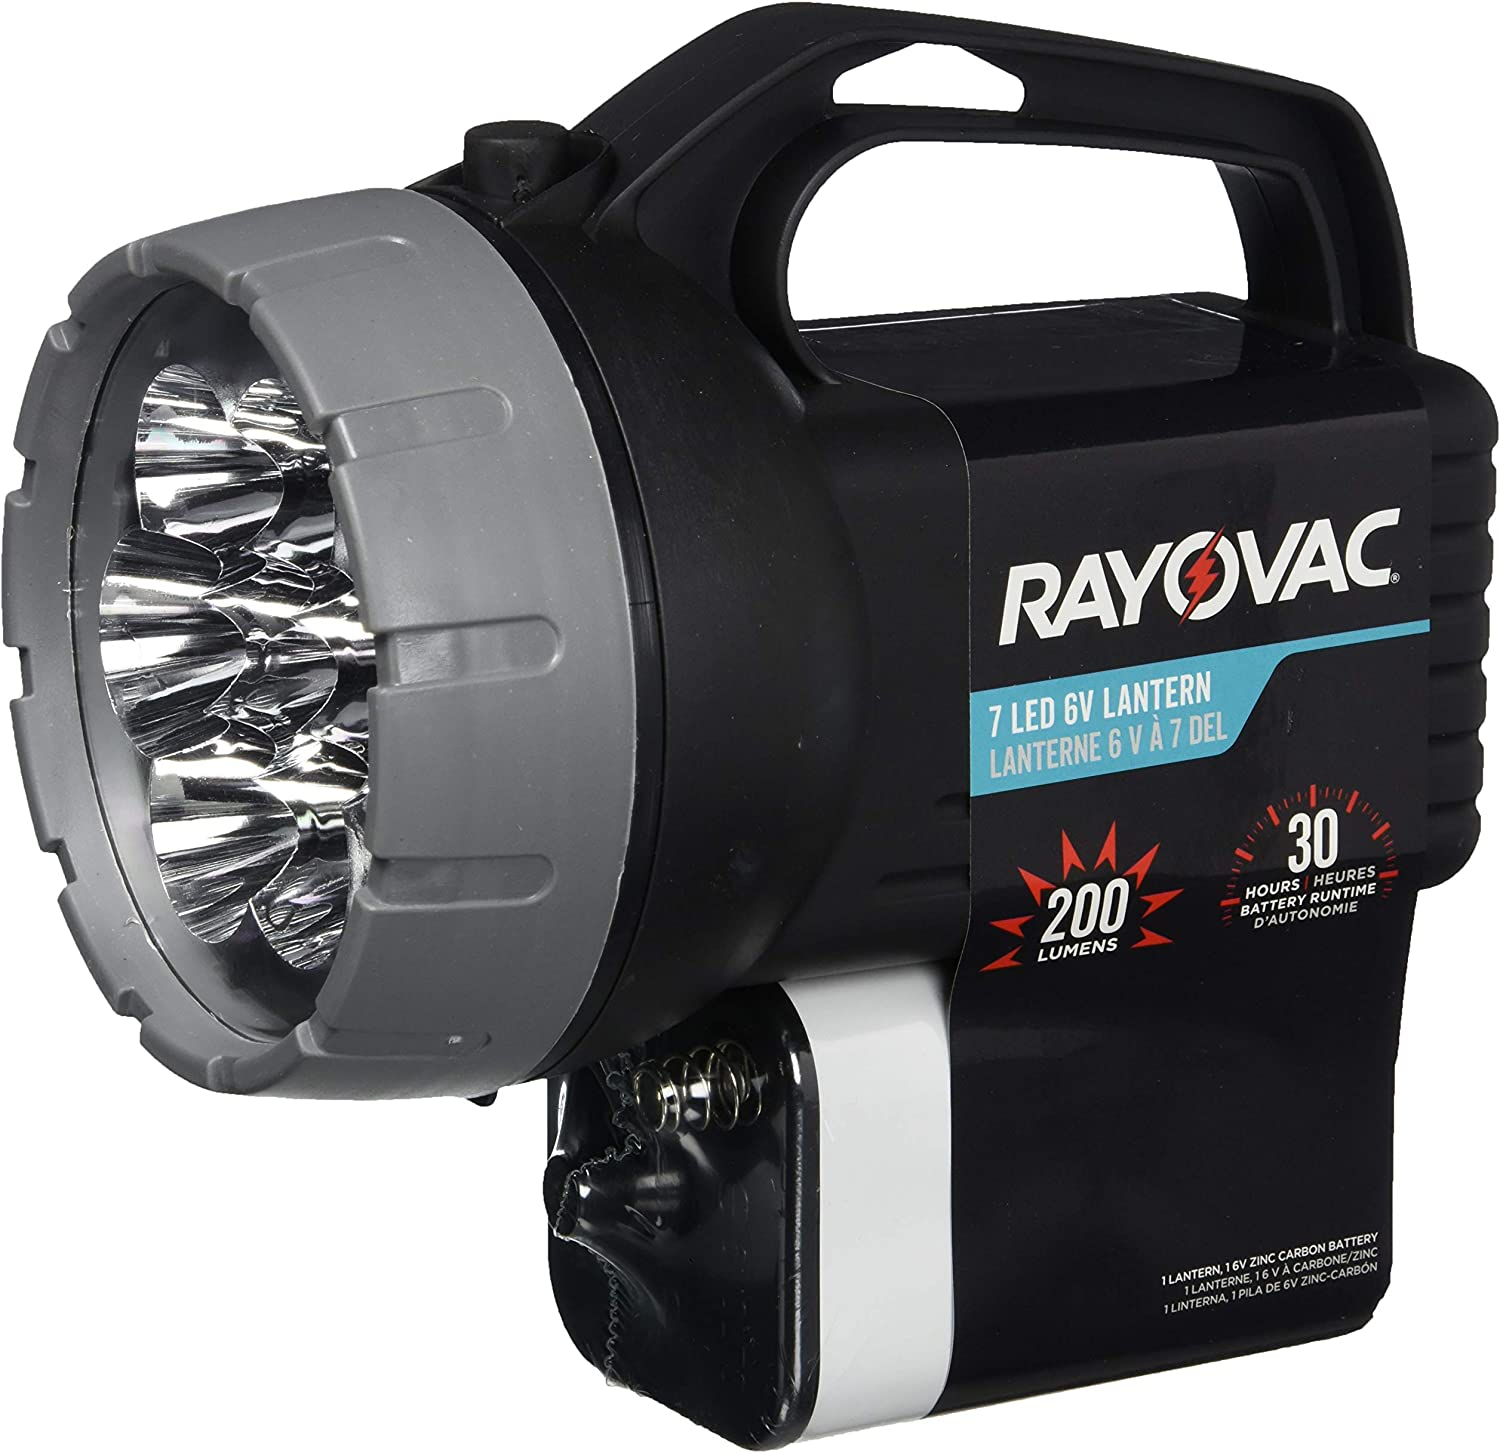 RAYOVAC Floating LED Lantern Flashlight, 6V Battery Included, Superb Battery Life, Floats For Easy Water Recovery, Emergency Light: Home Improvement